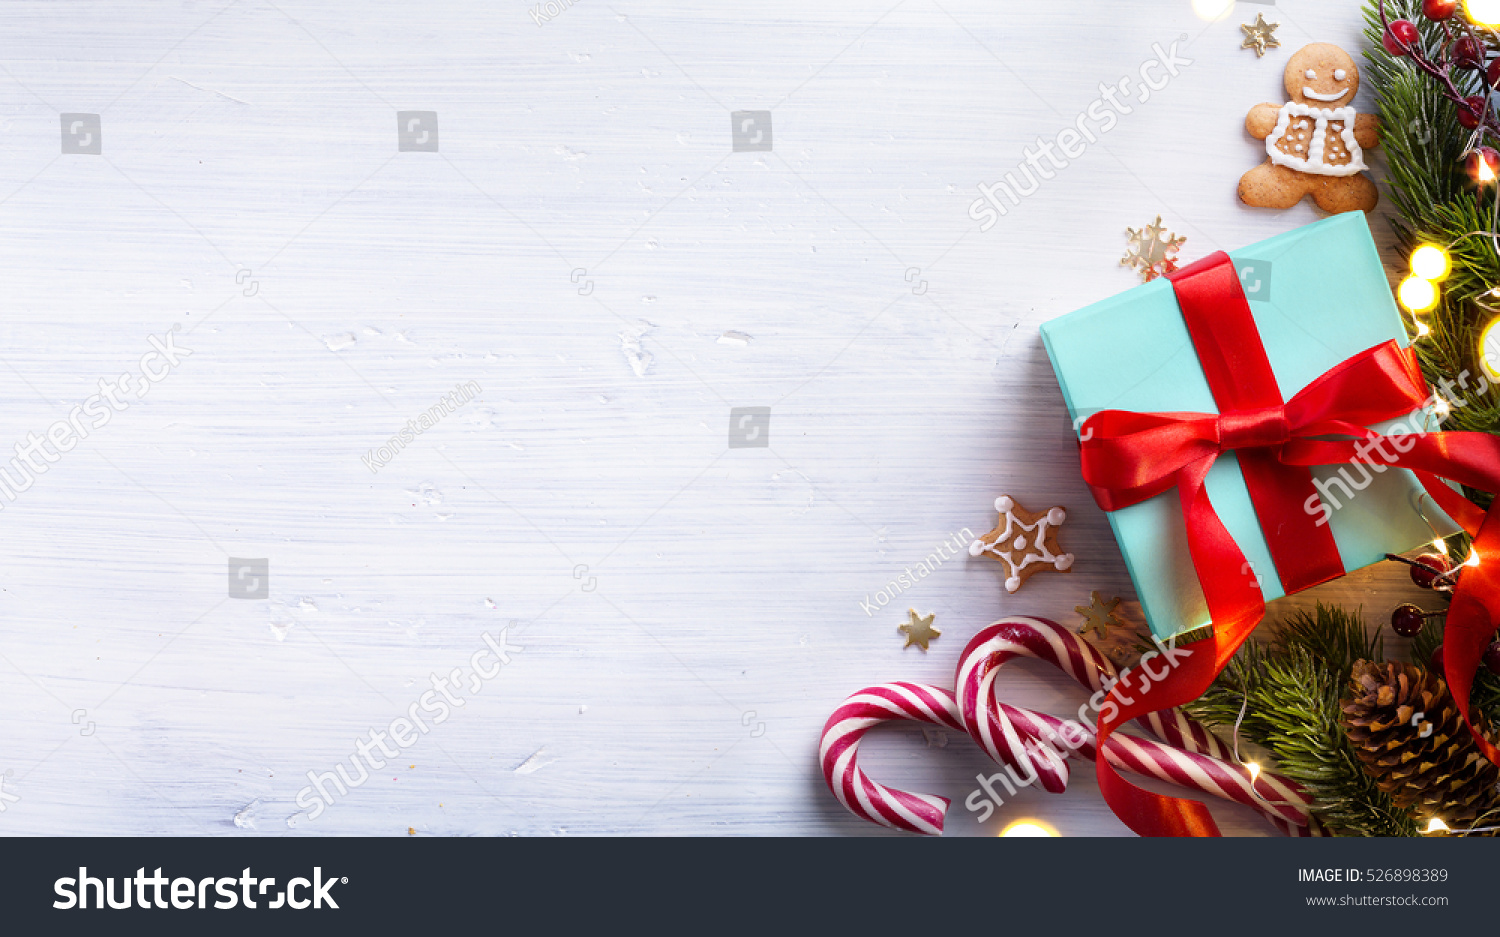 Art Christmas Holidays Composition On White Stock Photo (Edit Now ...